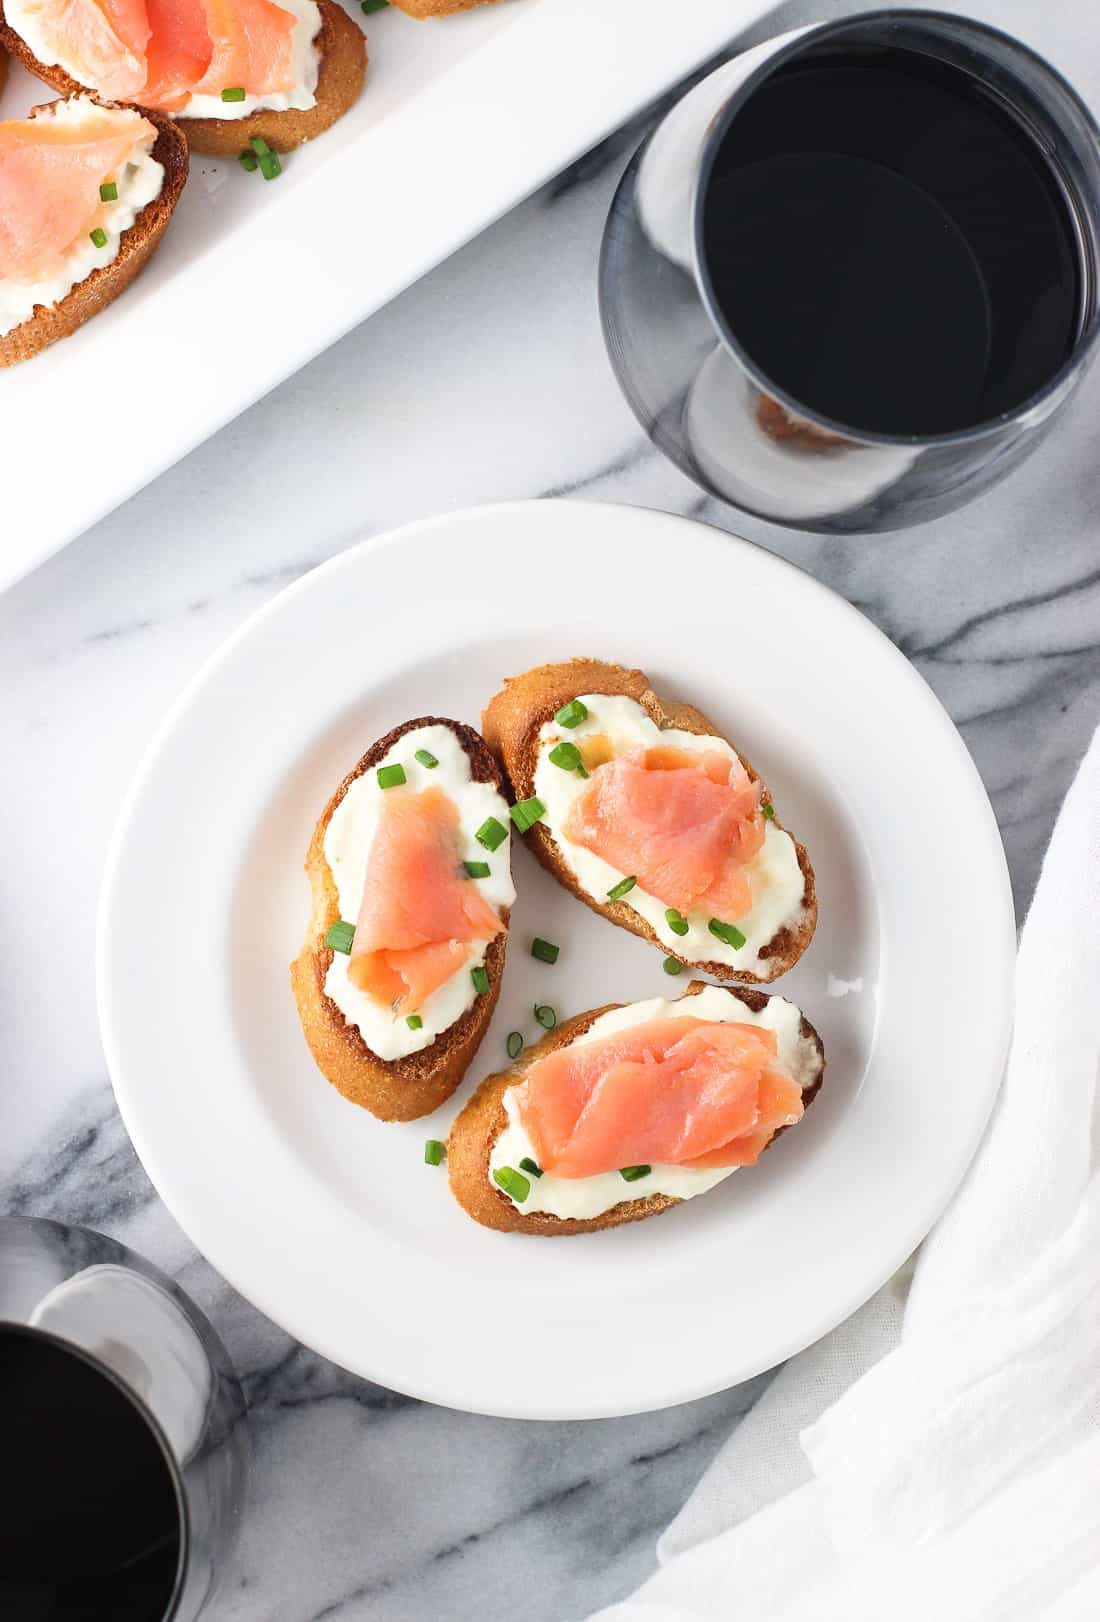 Burrata and Smoked Salmon Crostini